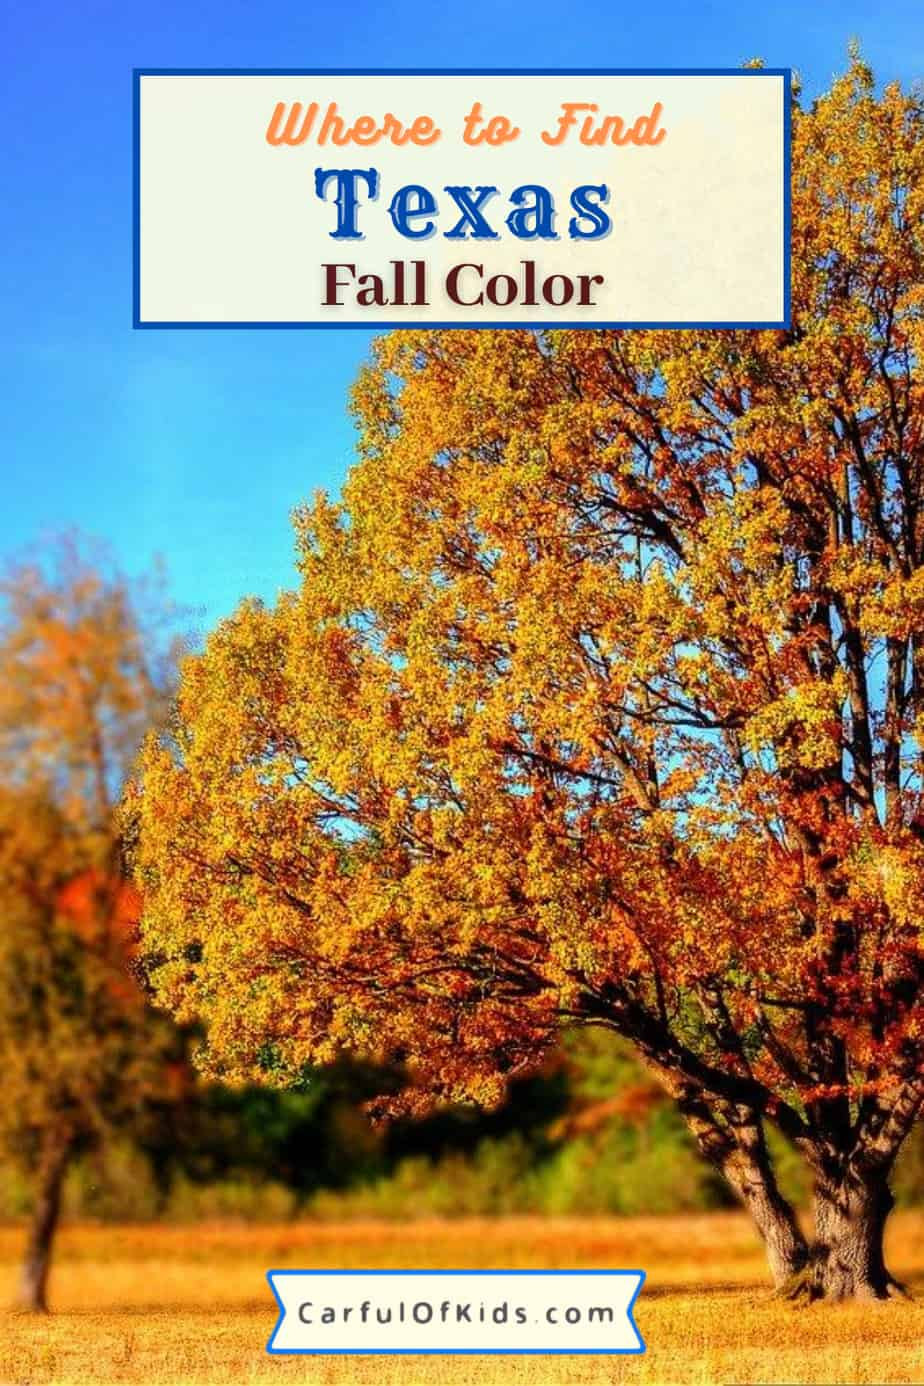 Fall is not lost in Texas. Find maples, sweetgums and cypress in parks across Texas. See the yellows, oranges and reds in late October and early November. As a bonus the parks offers camping. Get the details to help plan your Fall Color Trip in Texas. #Texas #fallcolor Best parks in Texas for fall color | When do the trees change in Texas